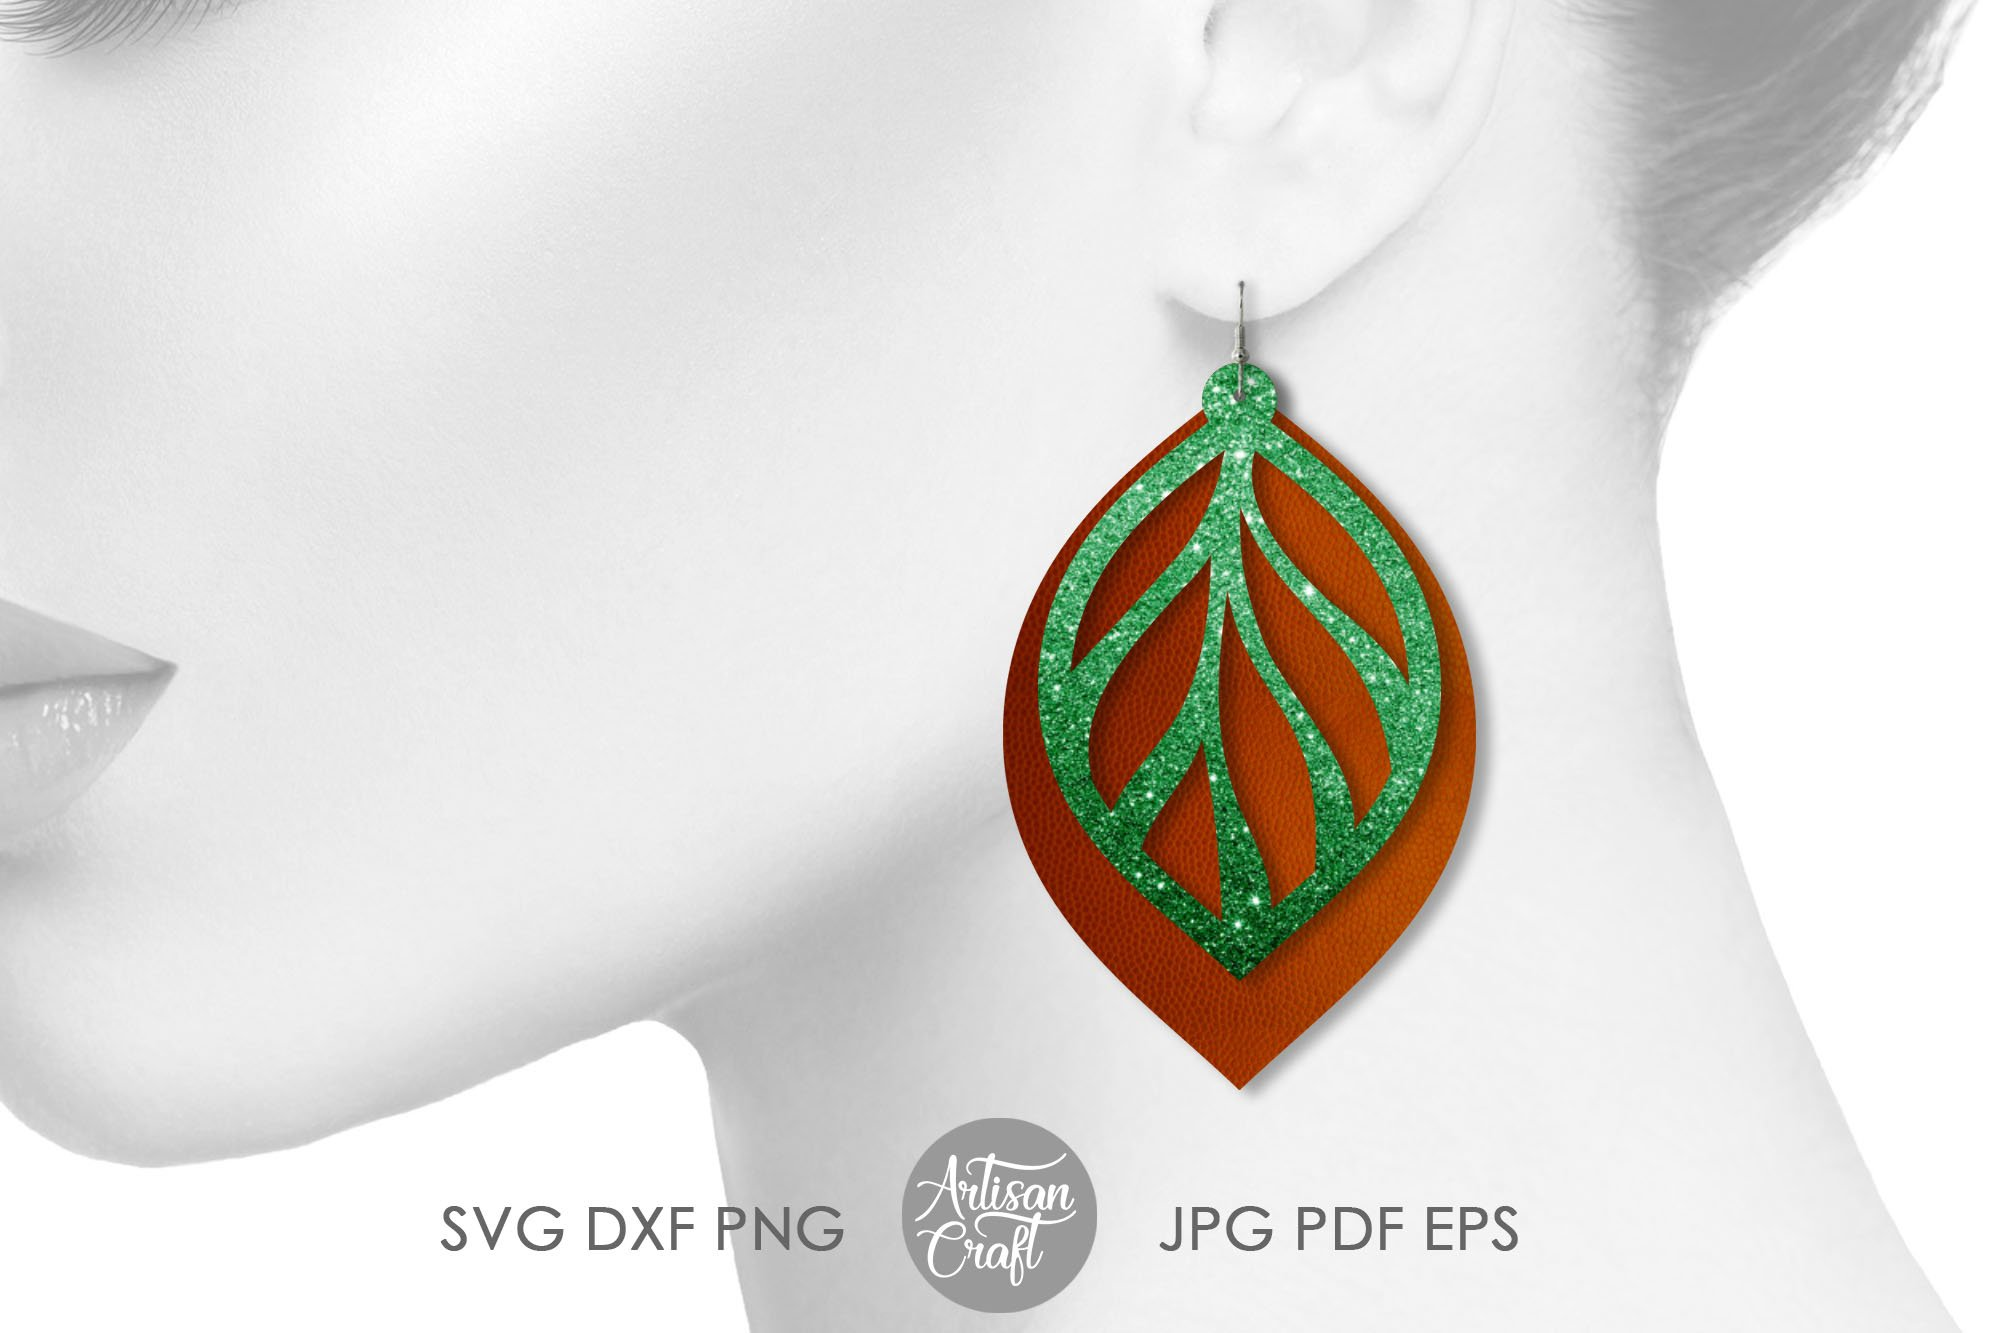 Leaf earring svg, faux leather earrings template example image 3